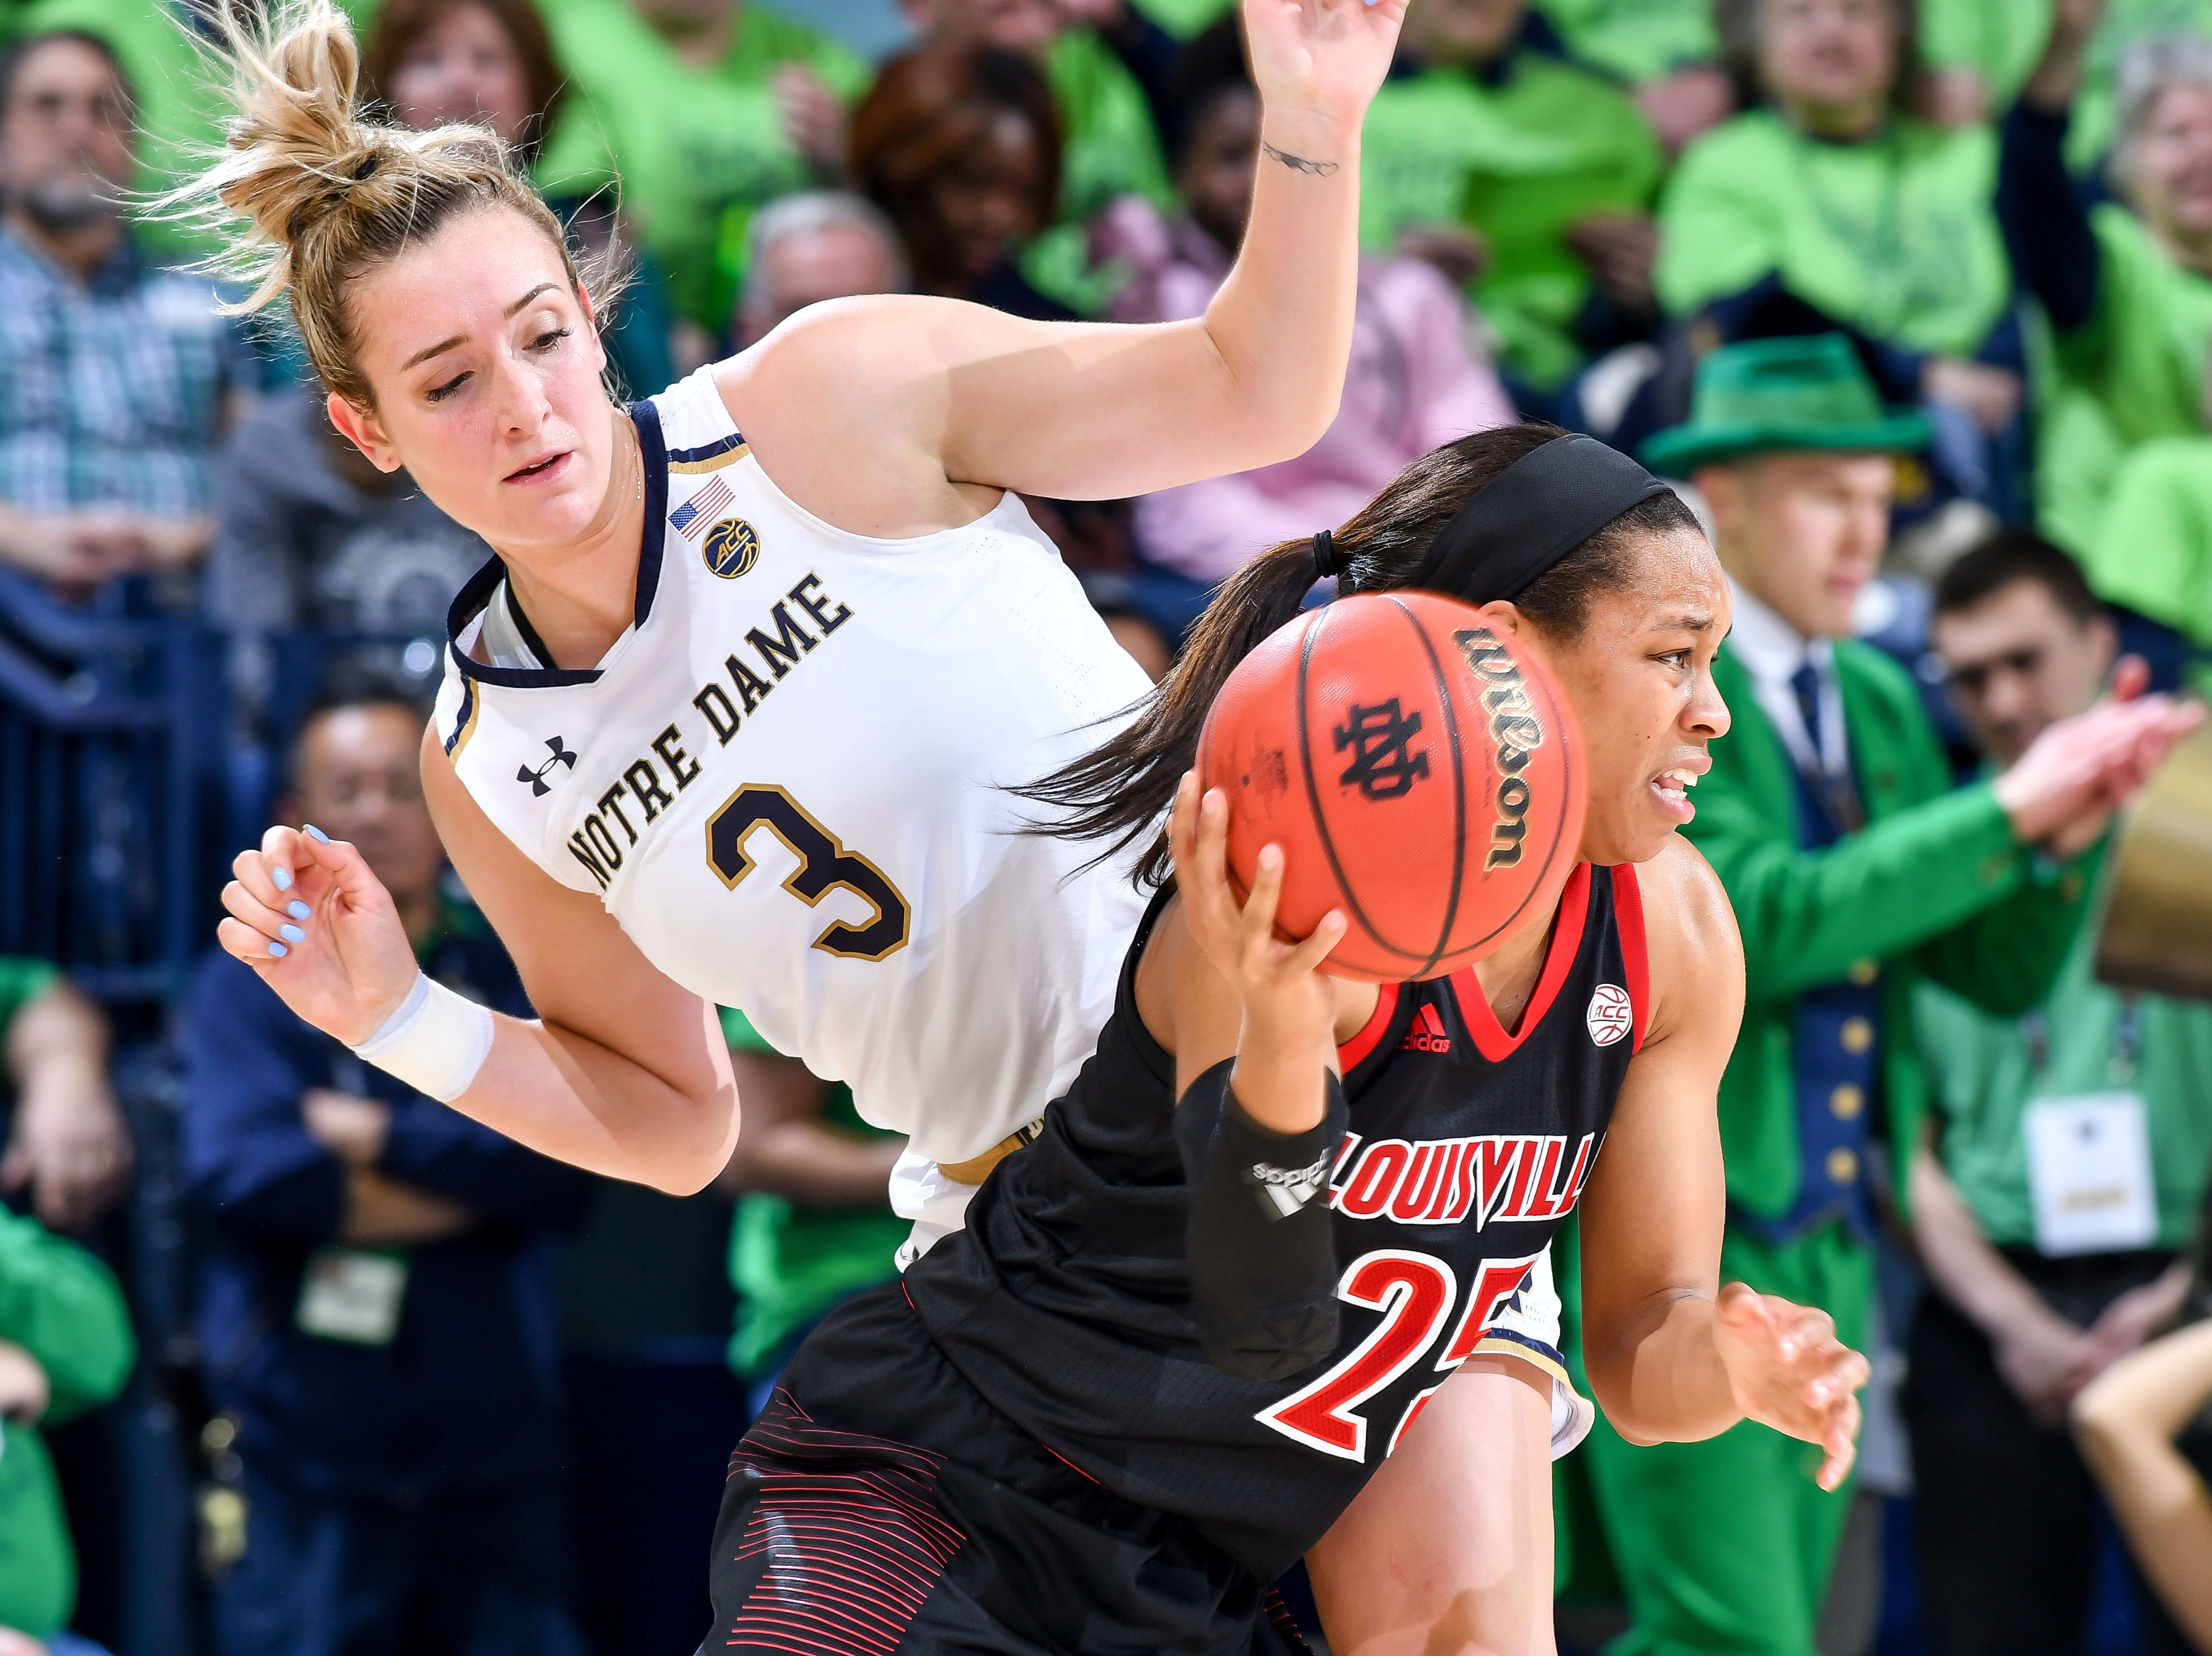 Jan 10, 2019; South Bend, IN, USA; Louisville Cardinals guard Asia Durr (25) dribbles as Notre Dame Fighting Irish guard Marina Mabrey (3) defends in the second half at the Purcell Pavilion. Mandatory Credit: Matt Cashore-USA TODAY Sports